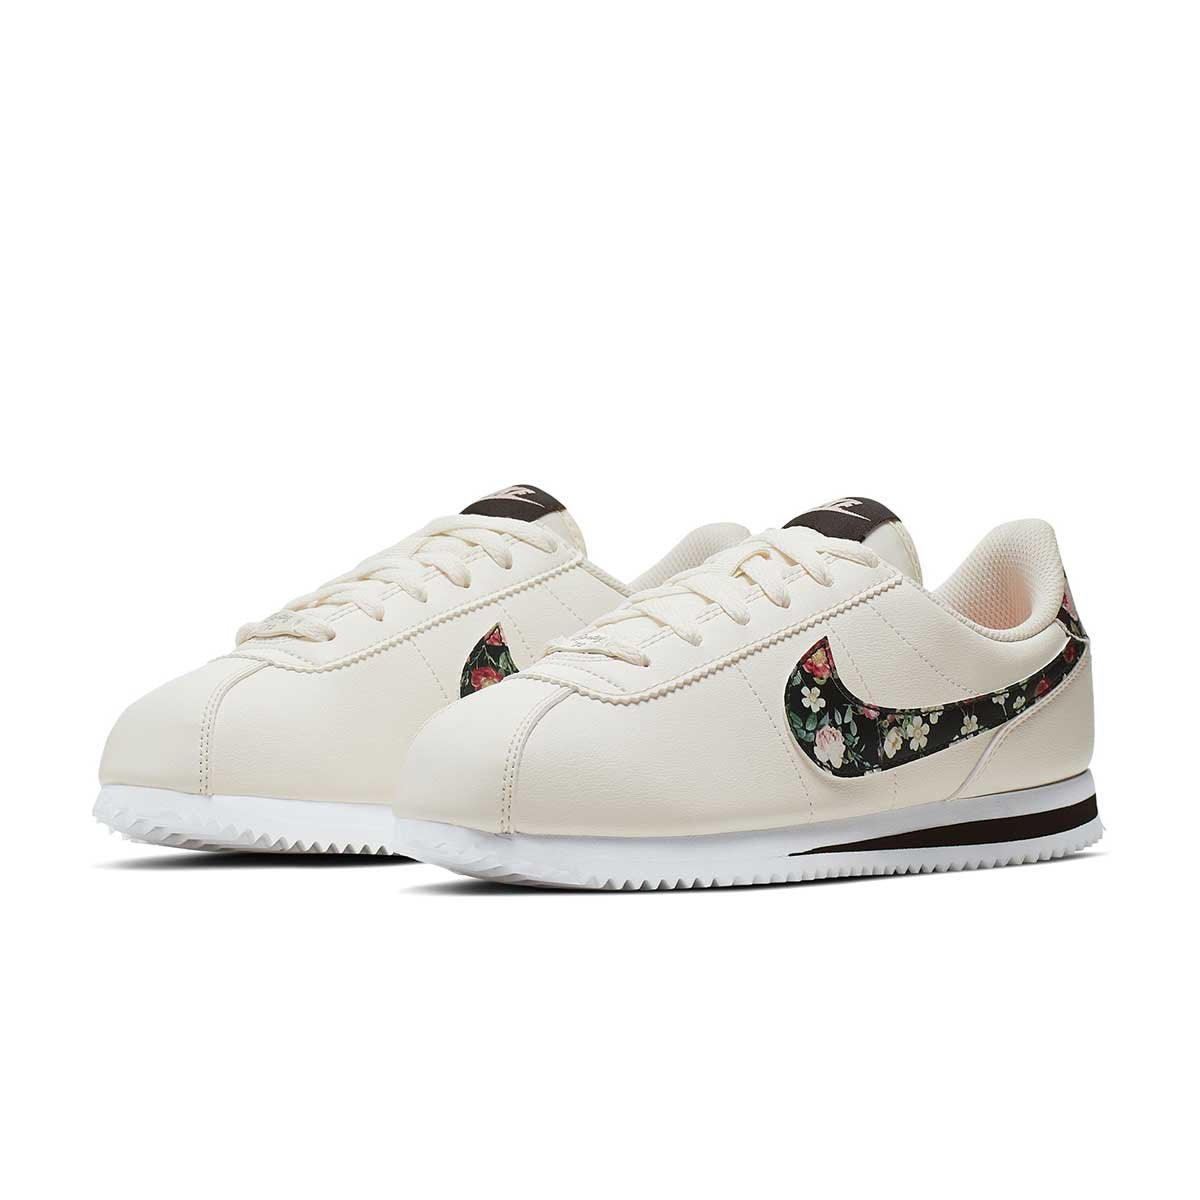 Big Kids Girls' Nike Cortez Basic Vintage Floral